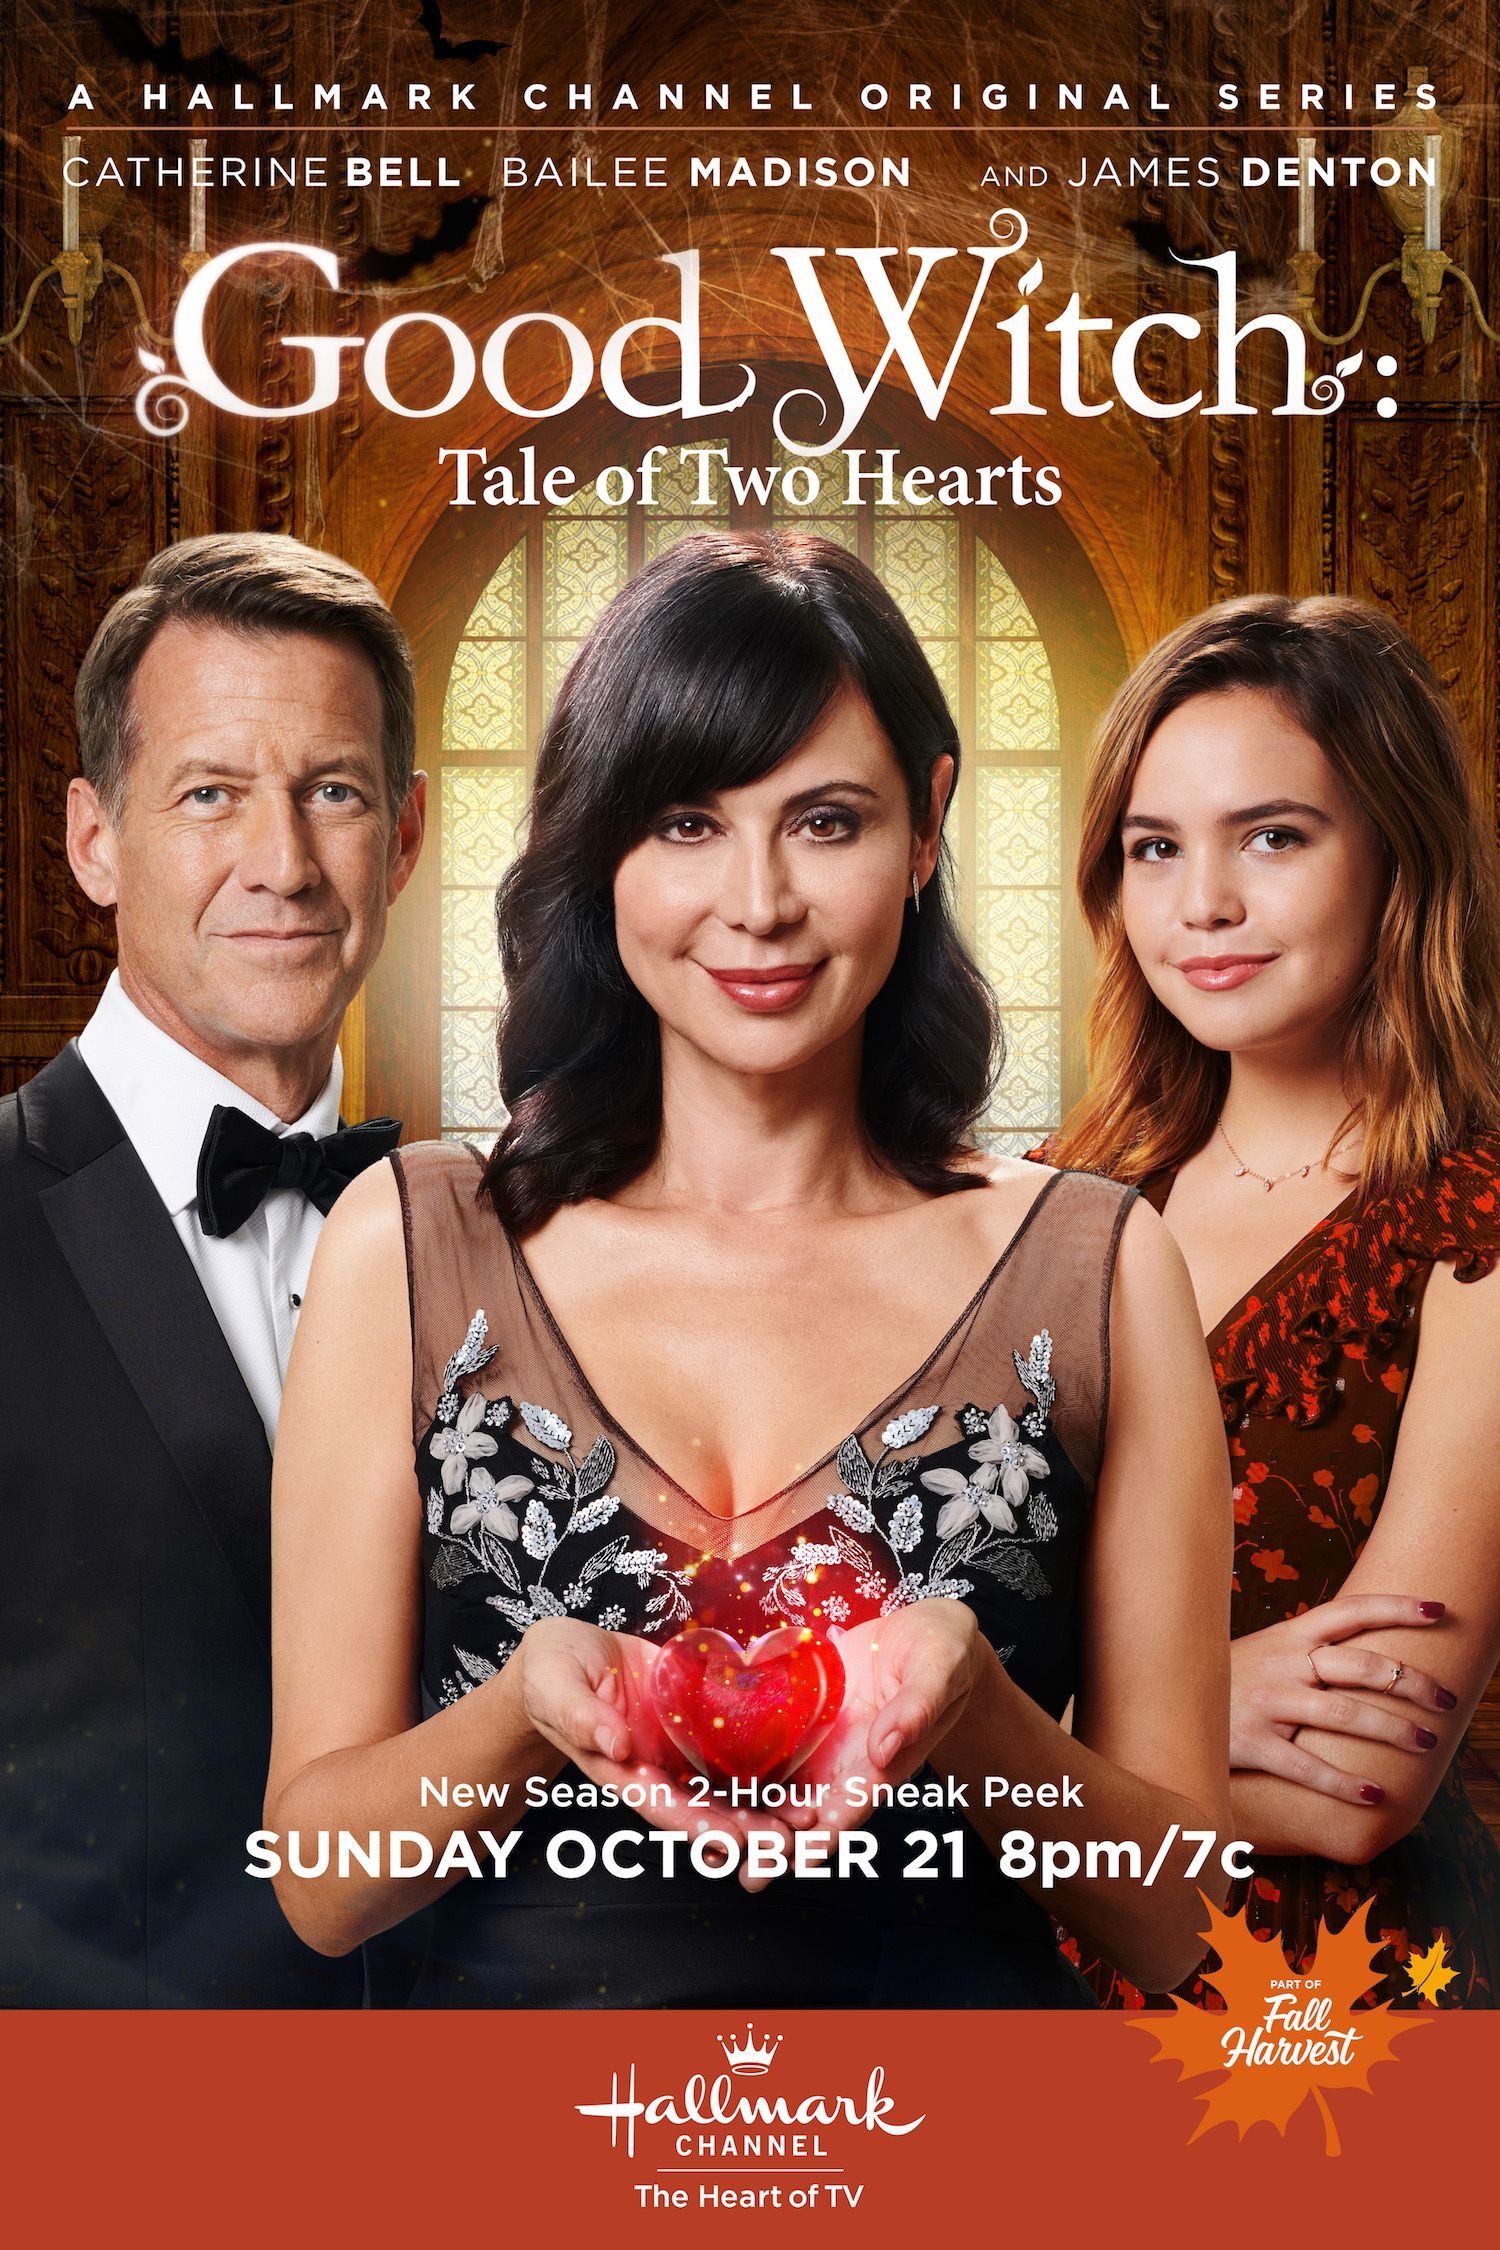 good witch tale of two hearts full movie online free